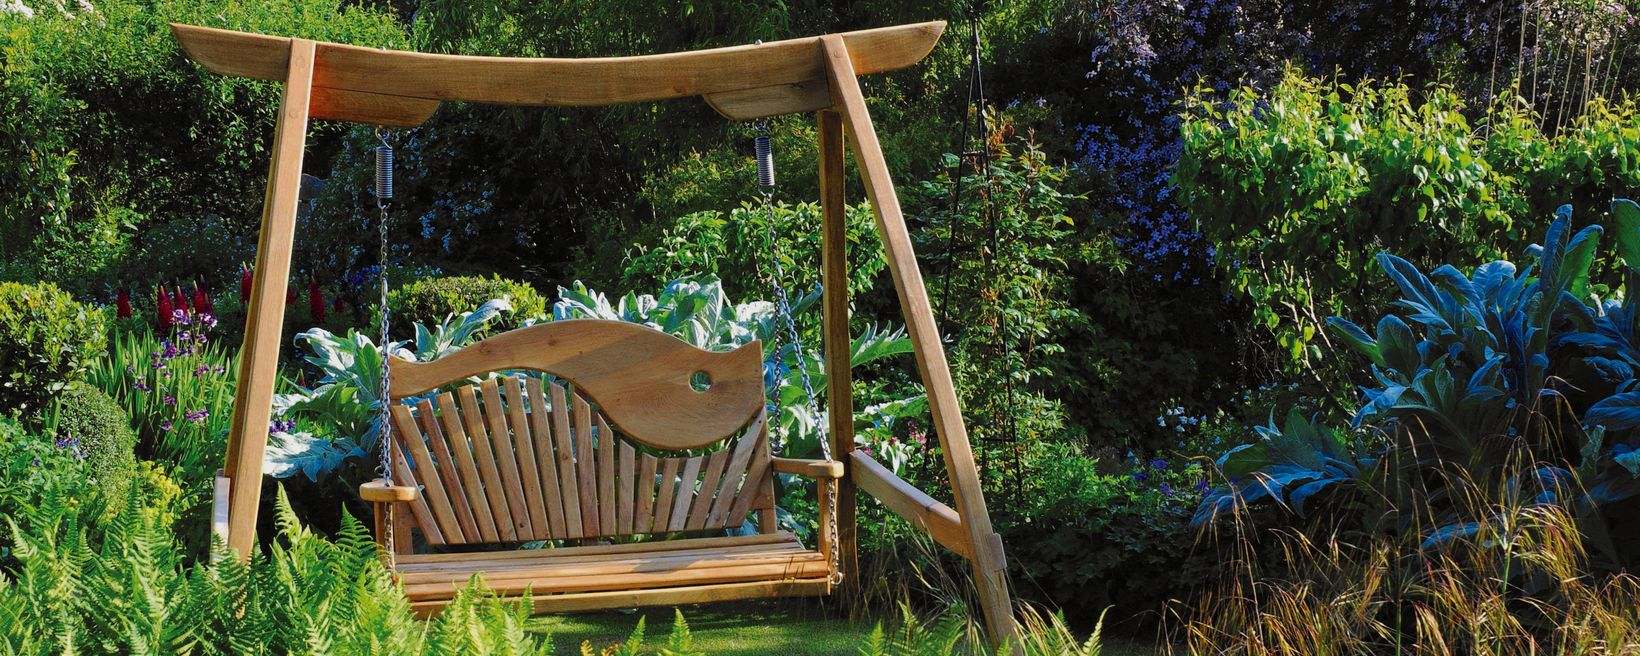 Kyokusen Swing Seats Lyme Regis by Sitting Spiritually - Bespoke Swings For All Ages